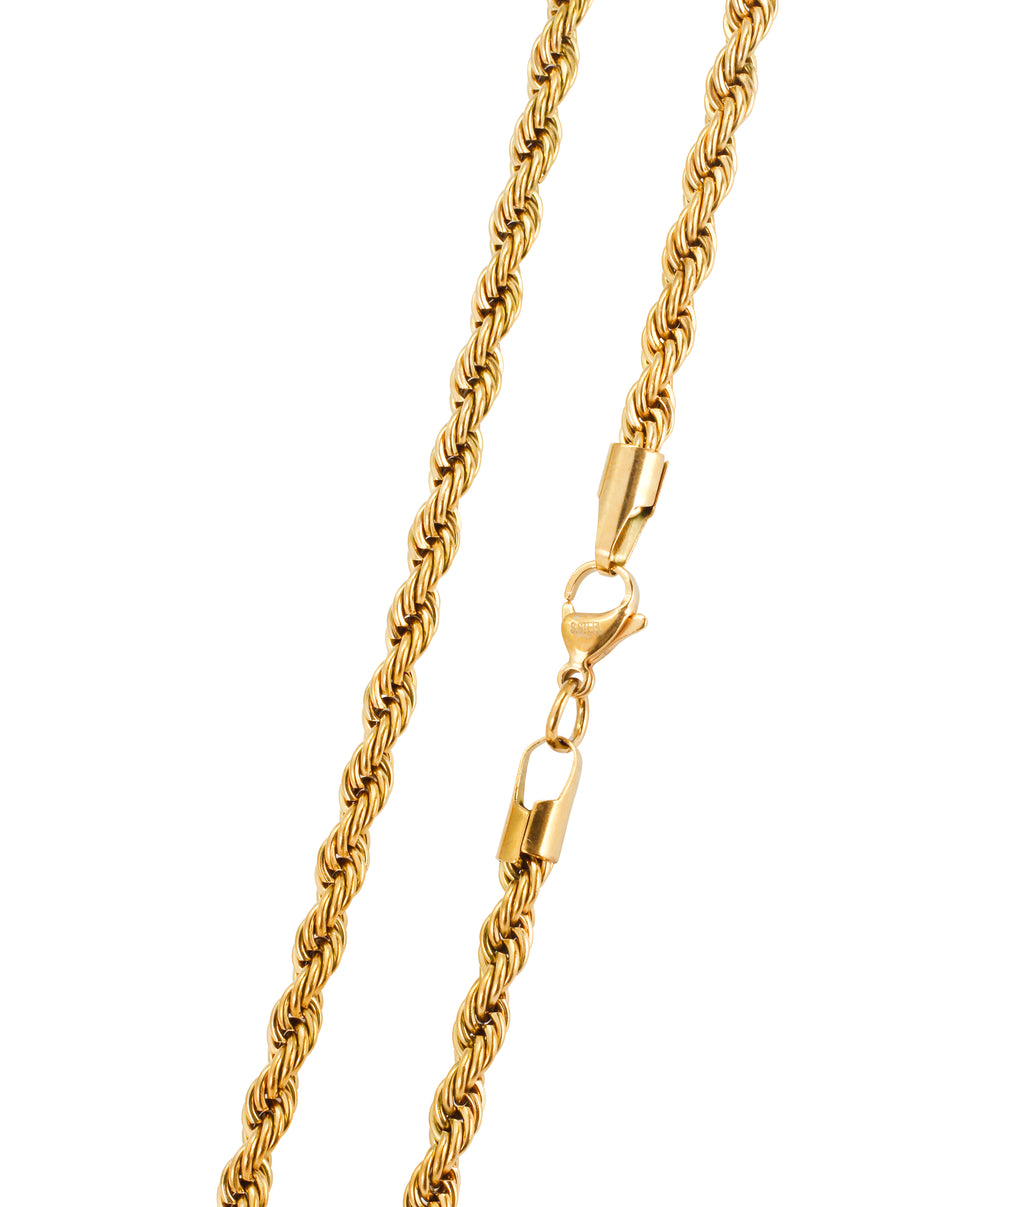 5MM GOLD ROPE CHAIN